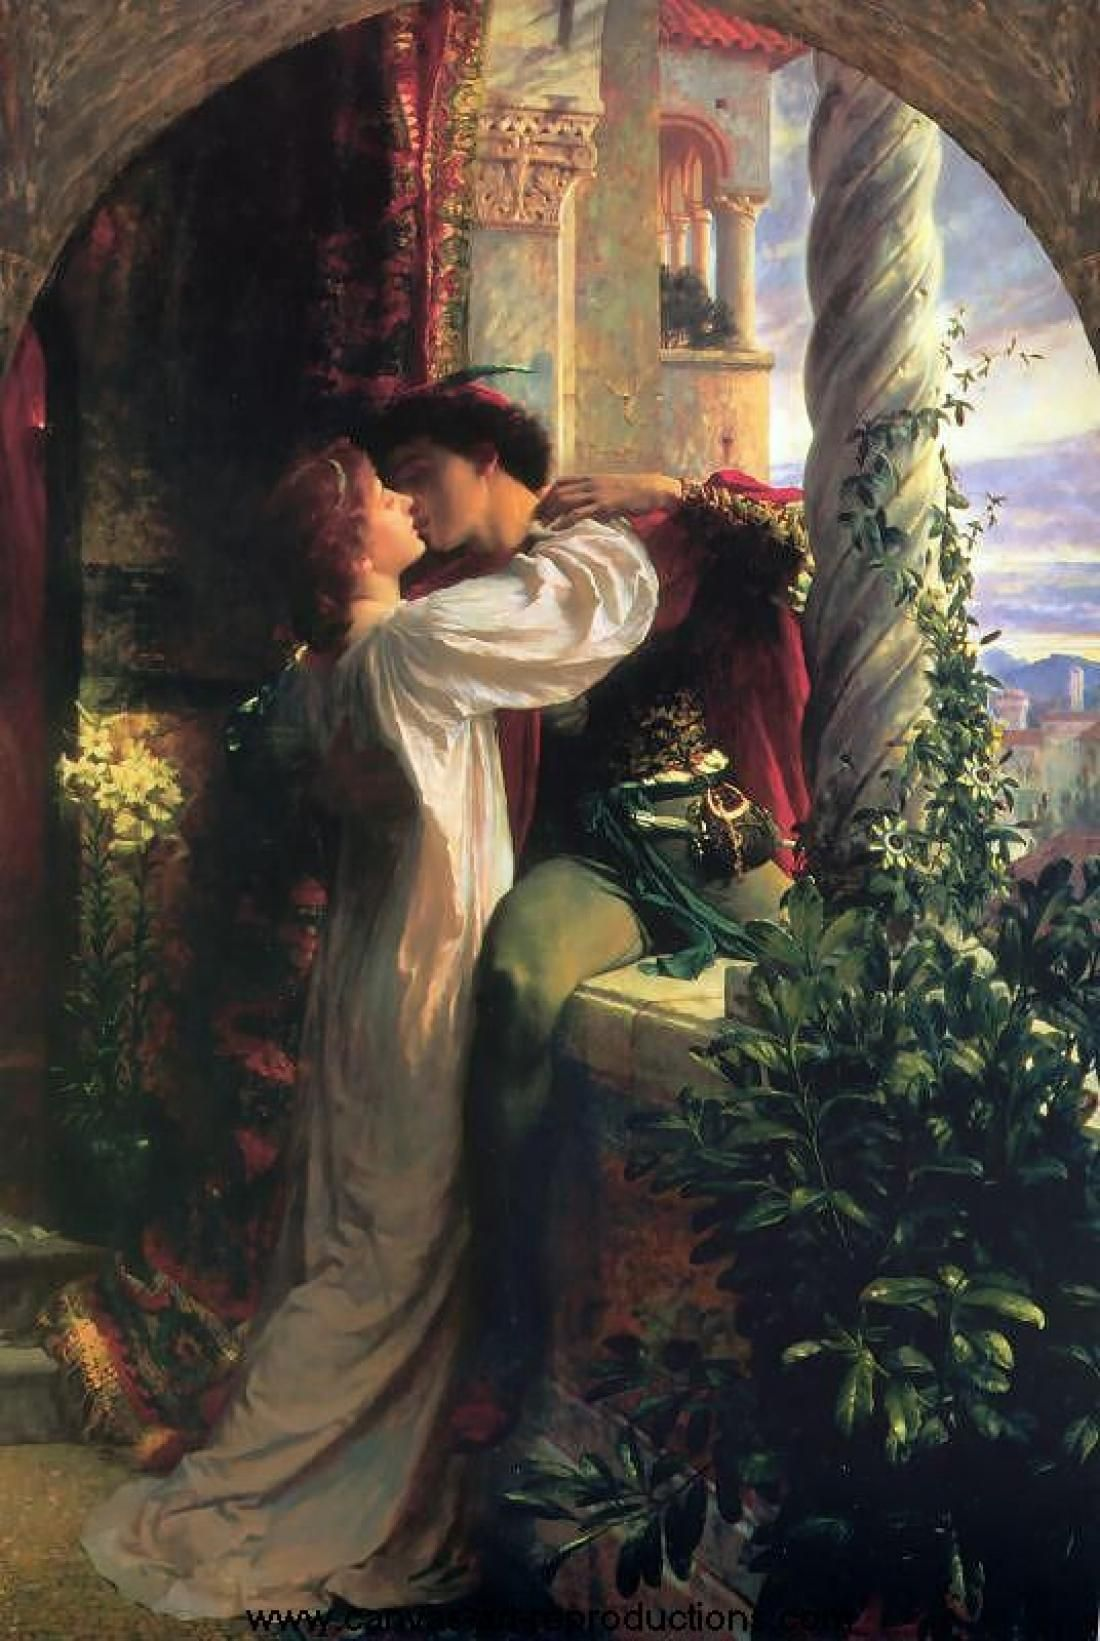 Sir Frank Dicksee - Romeo and Juliet, 1884 - England F.Dicksee was a member of the Pre-Raphaelite Brotherwood